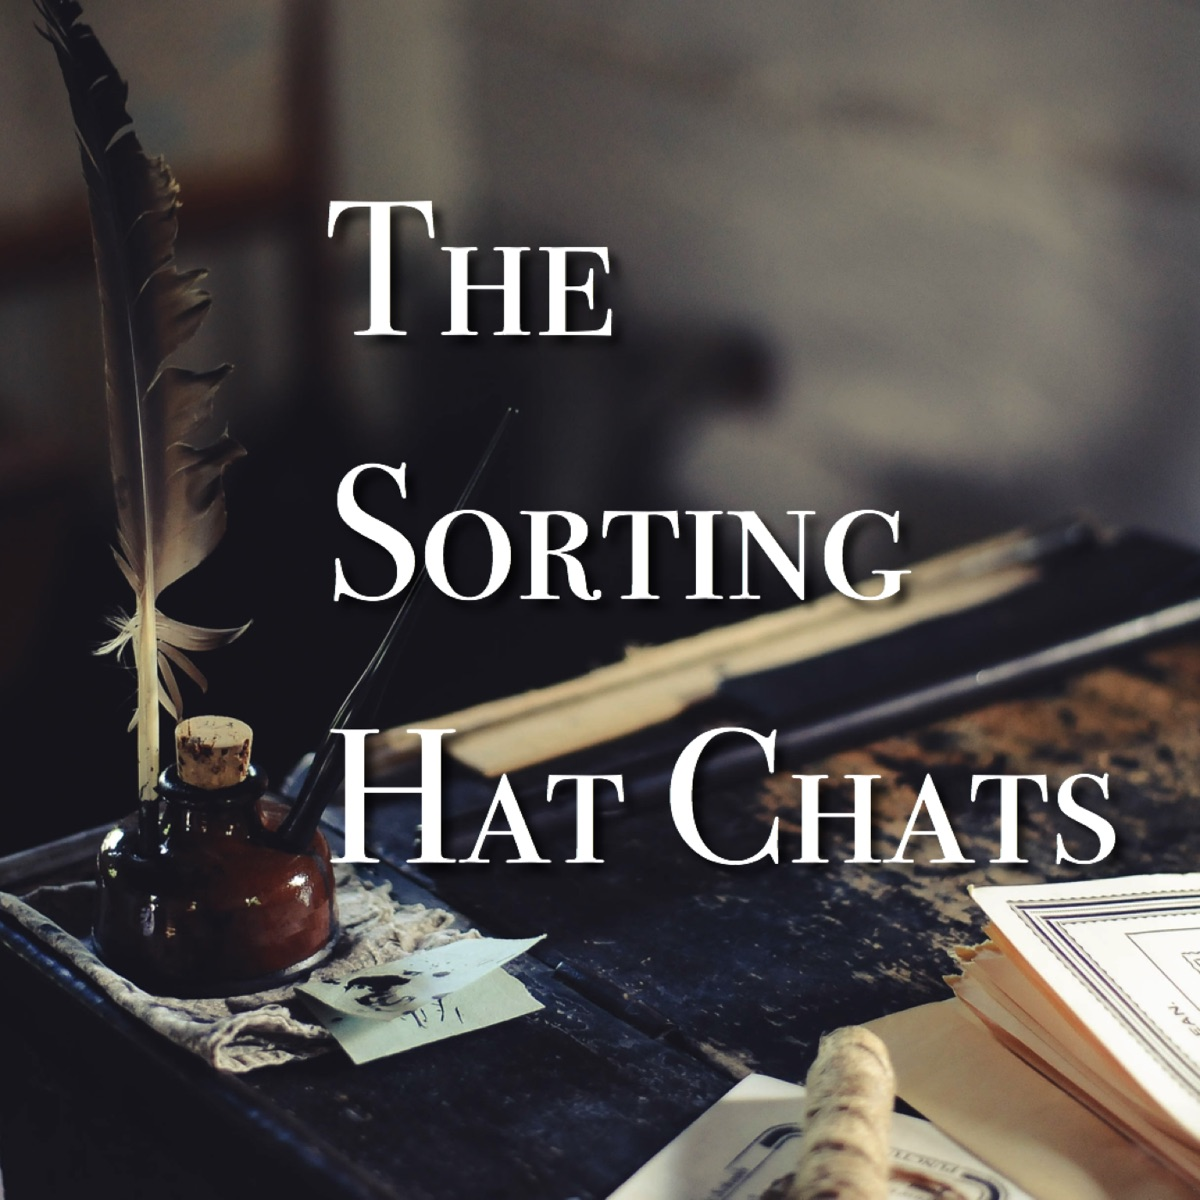 The Sorting Hat Chats